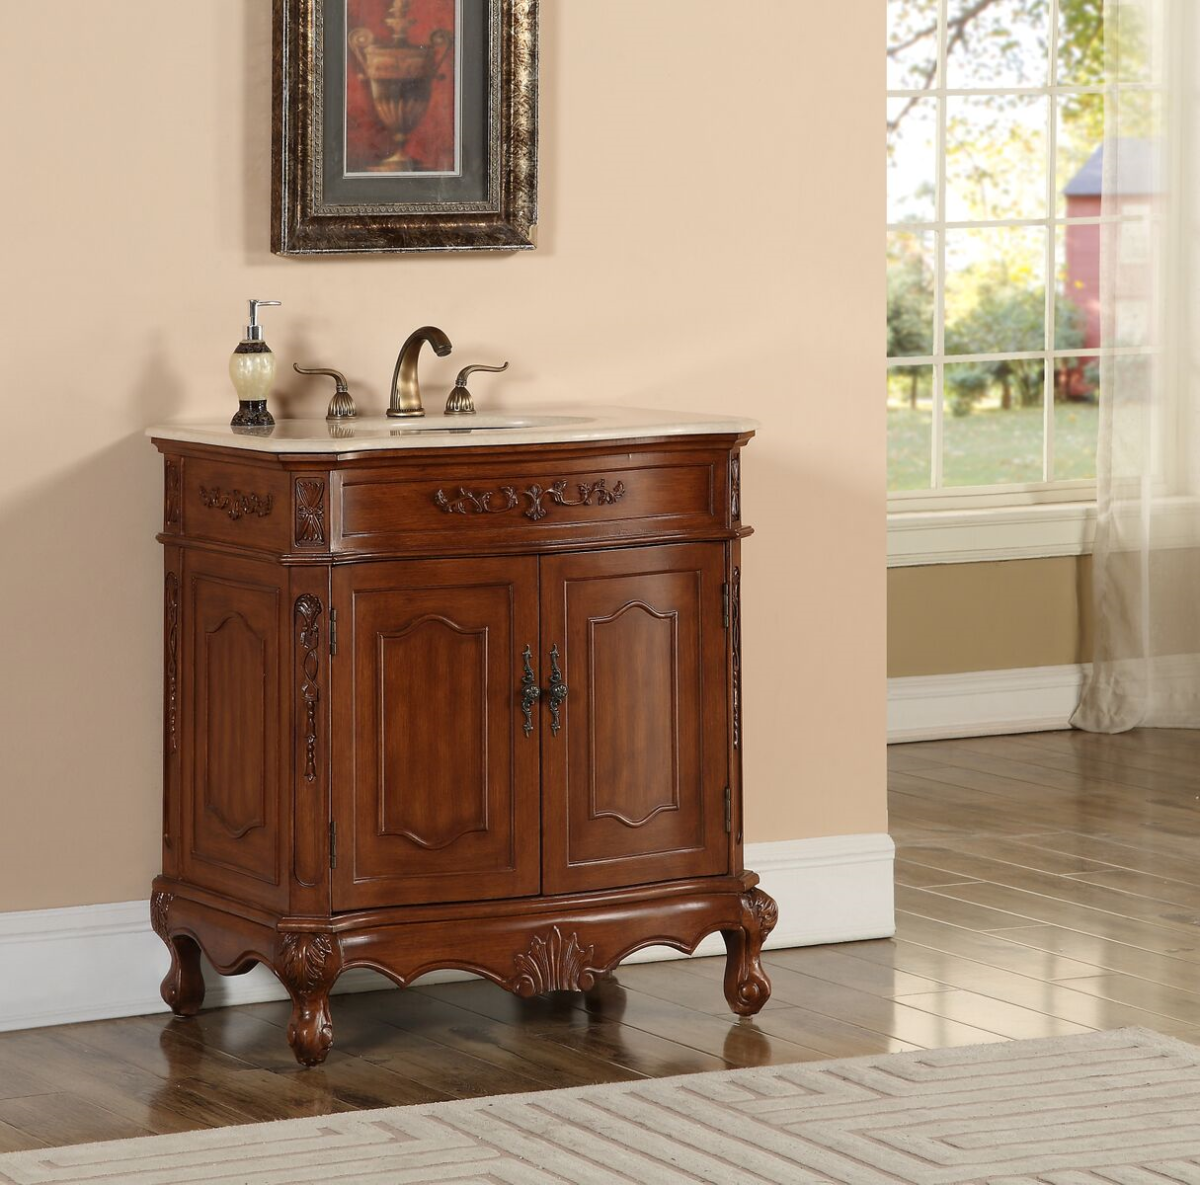 """32"""" Deep Chestnut Finish Vanity with Mirror, Med Cab, and Linen Cabinet Options"""